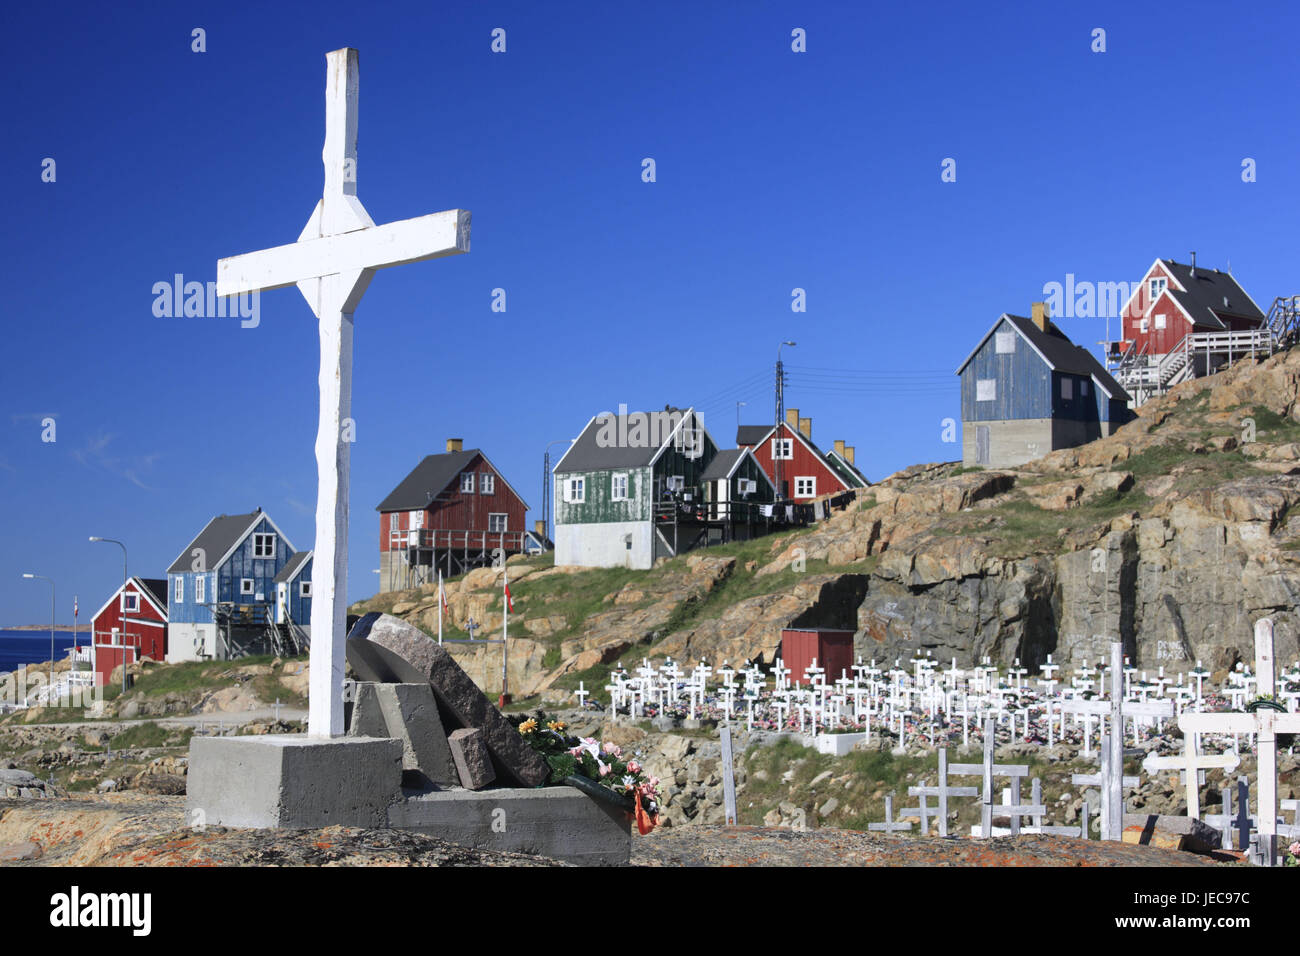 Greenland, Upernavik, residential houses, cemetery, crosses, North-Western Greenland, coast, town, the Arctic, houses, - Stock Image